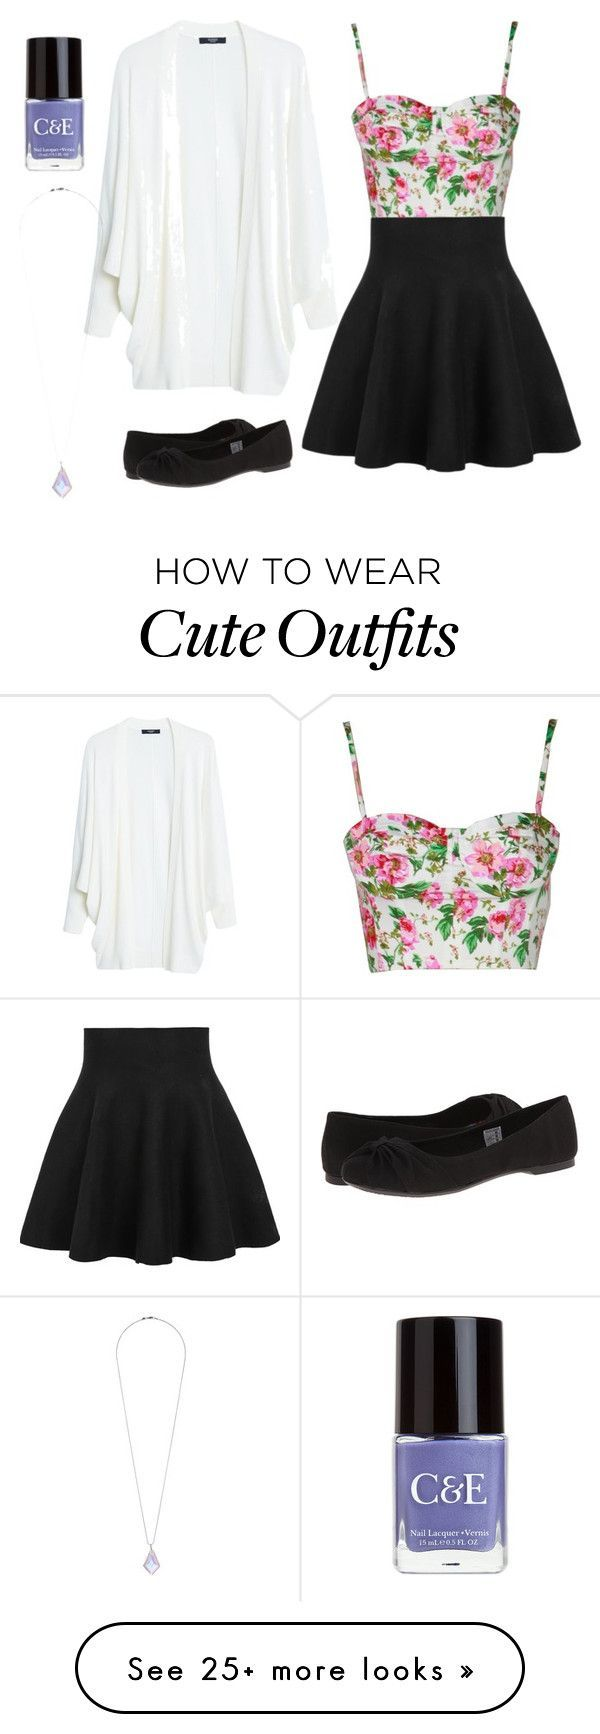 """""""Cute Outfit for Teens/Tweens!!!"""" by sparklecat102 on Polyvore featuring MANGO, Crabtree & Evelyn, Rocket Dog and Miss Selfridge"""